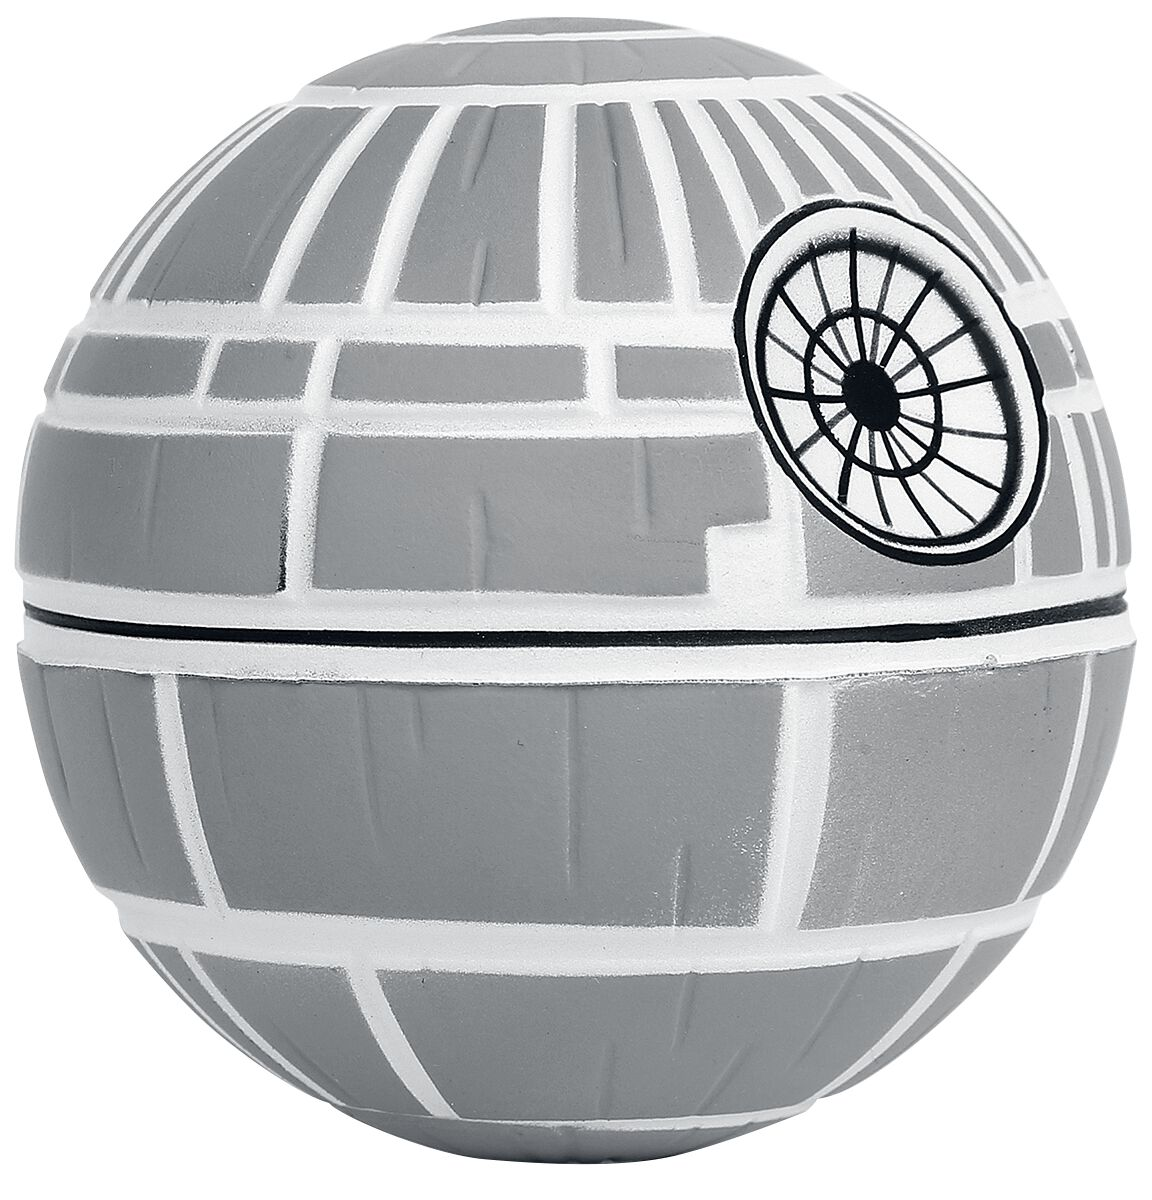 Image of   Star Wars Death Star - Anti-Stress Ball Humor Standard